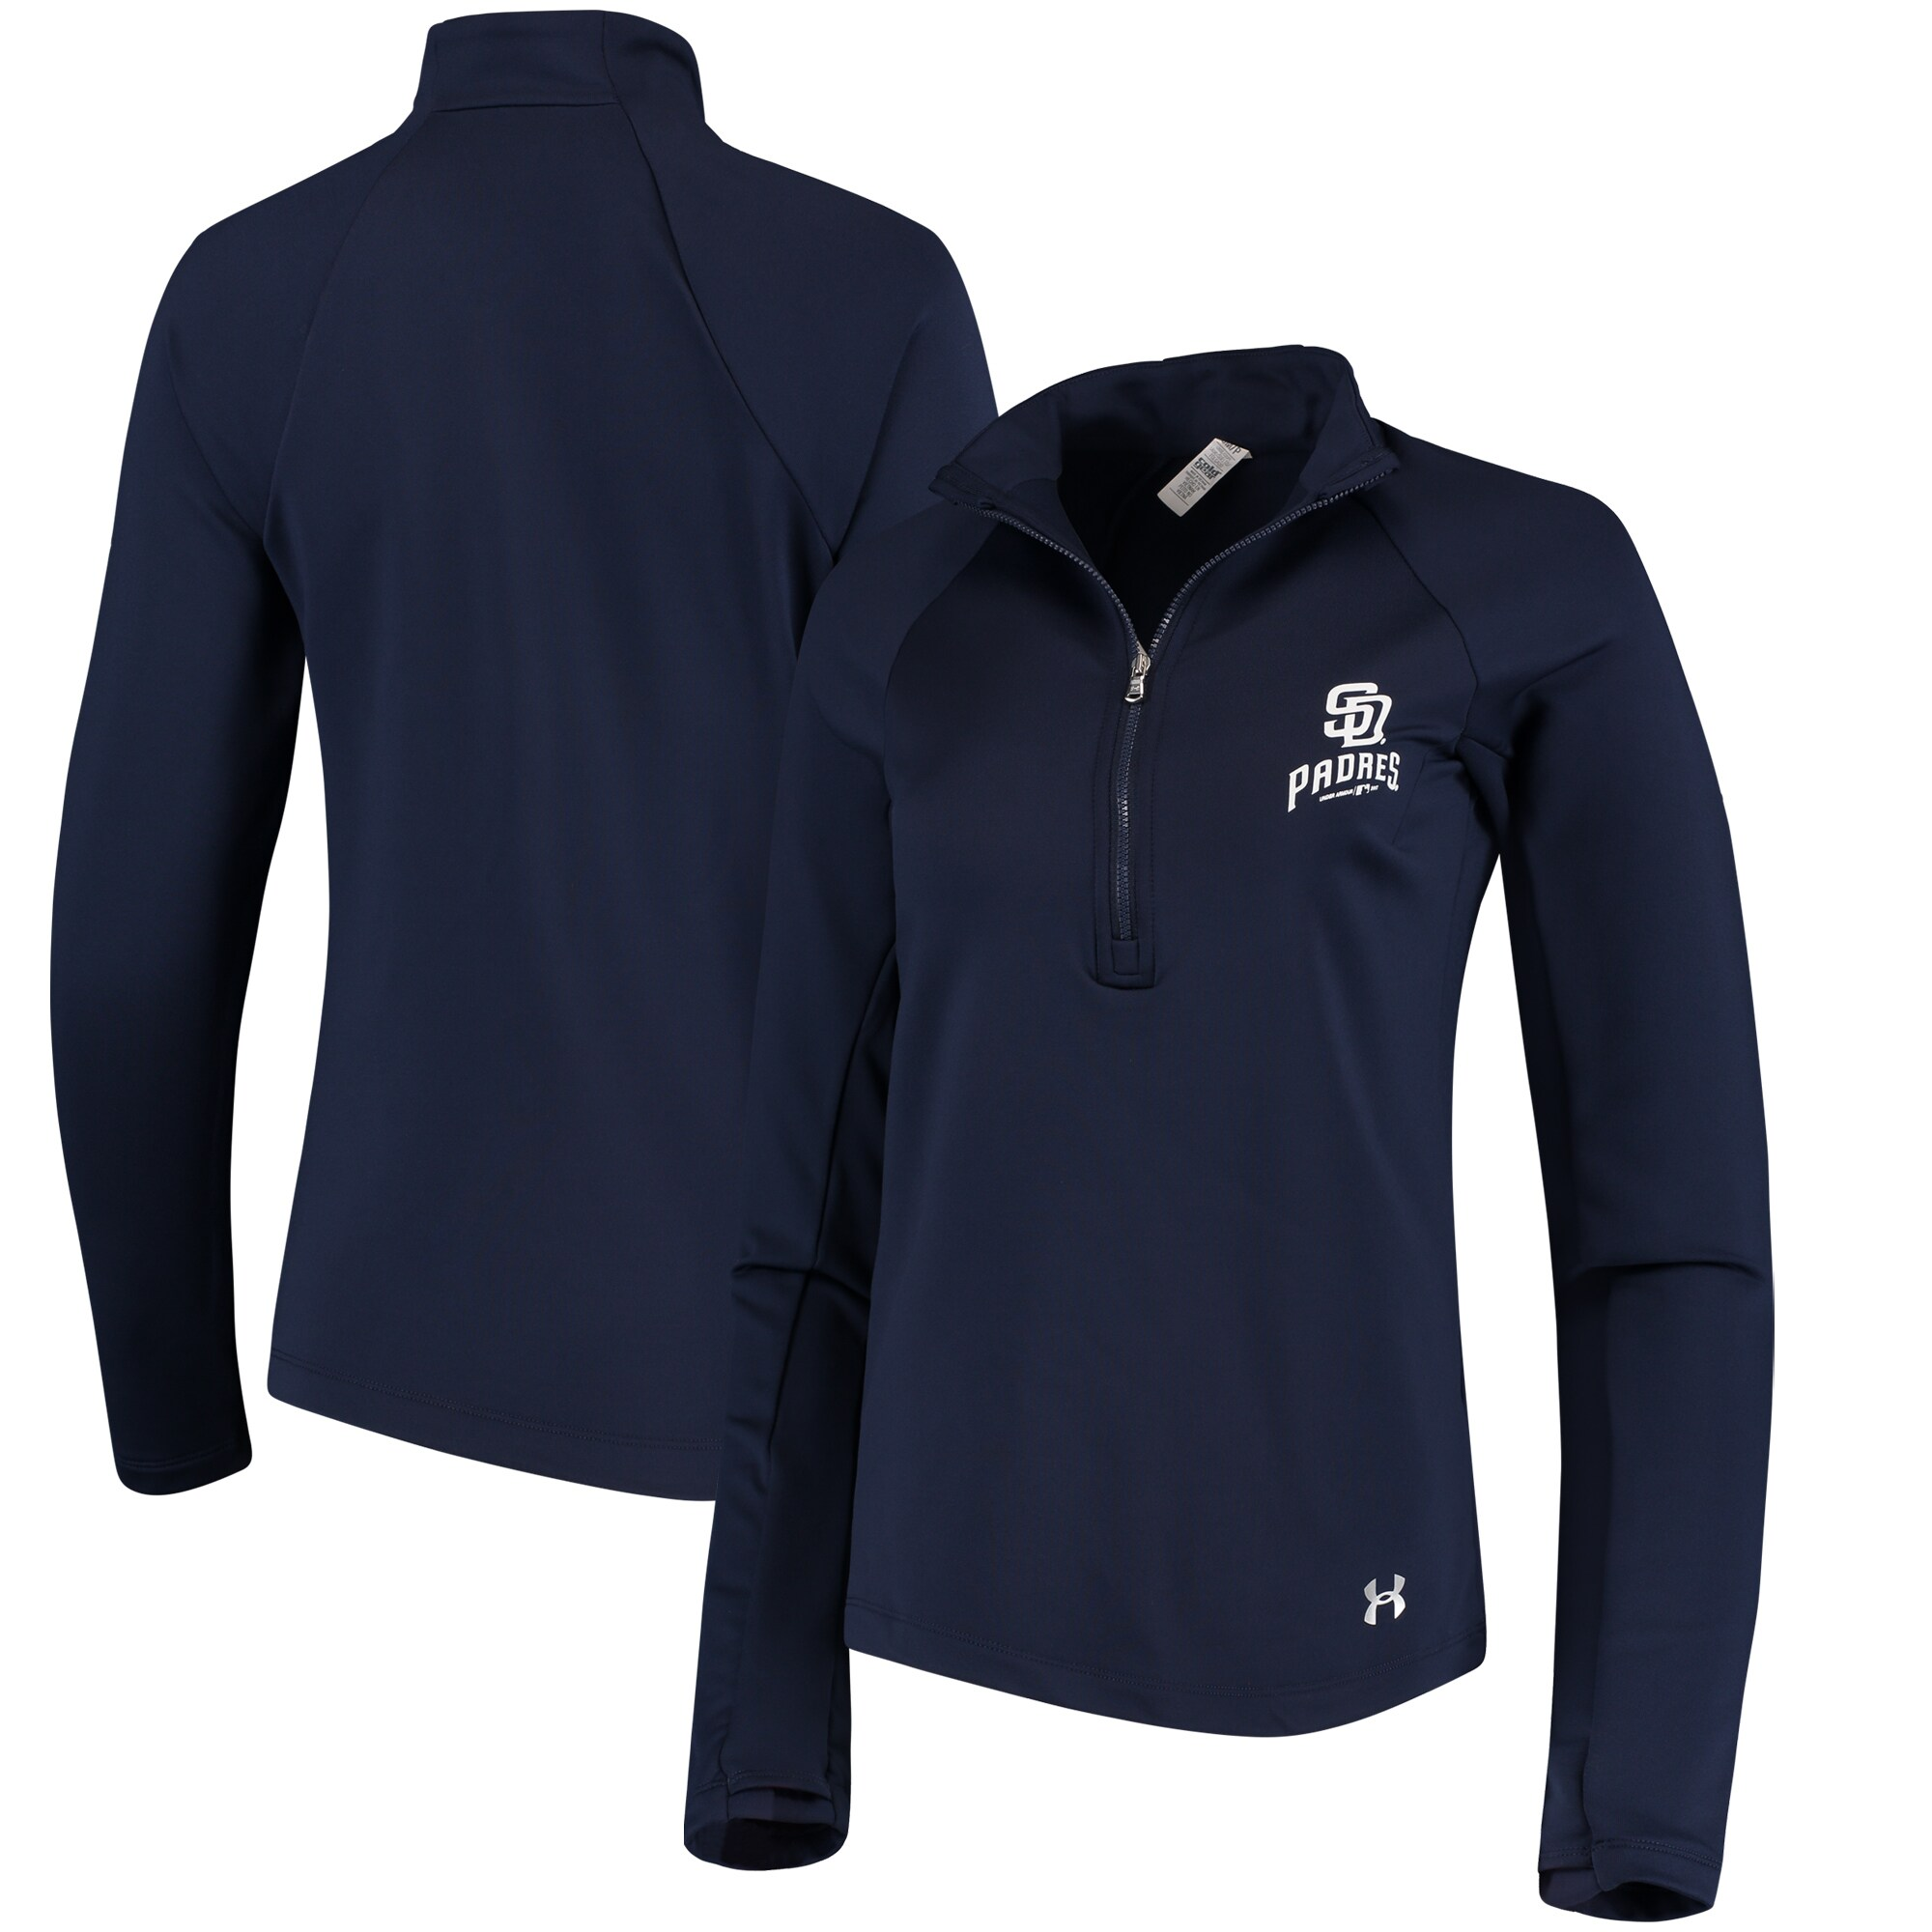 San Diego Padres Under Armour Women's Team Logo Half-Zip Performance Jacket - Navy